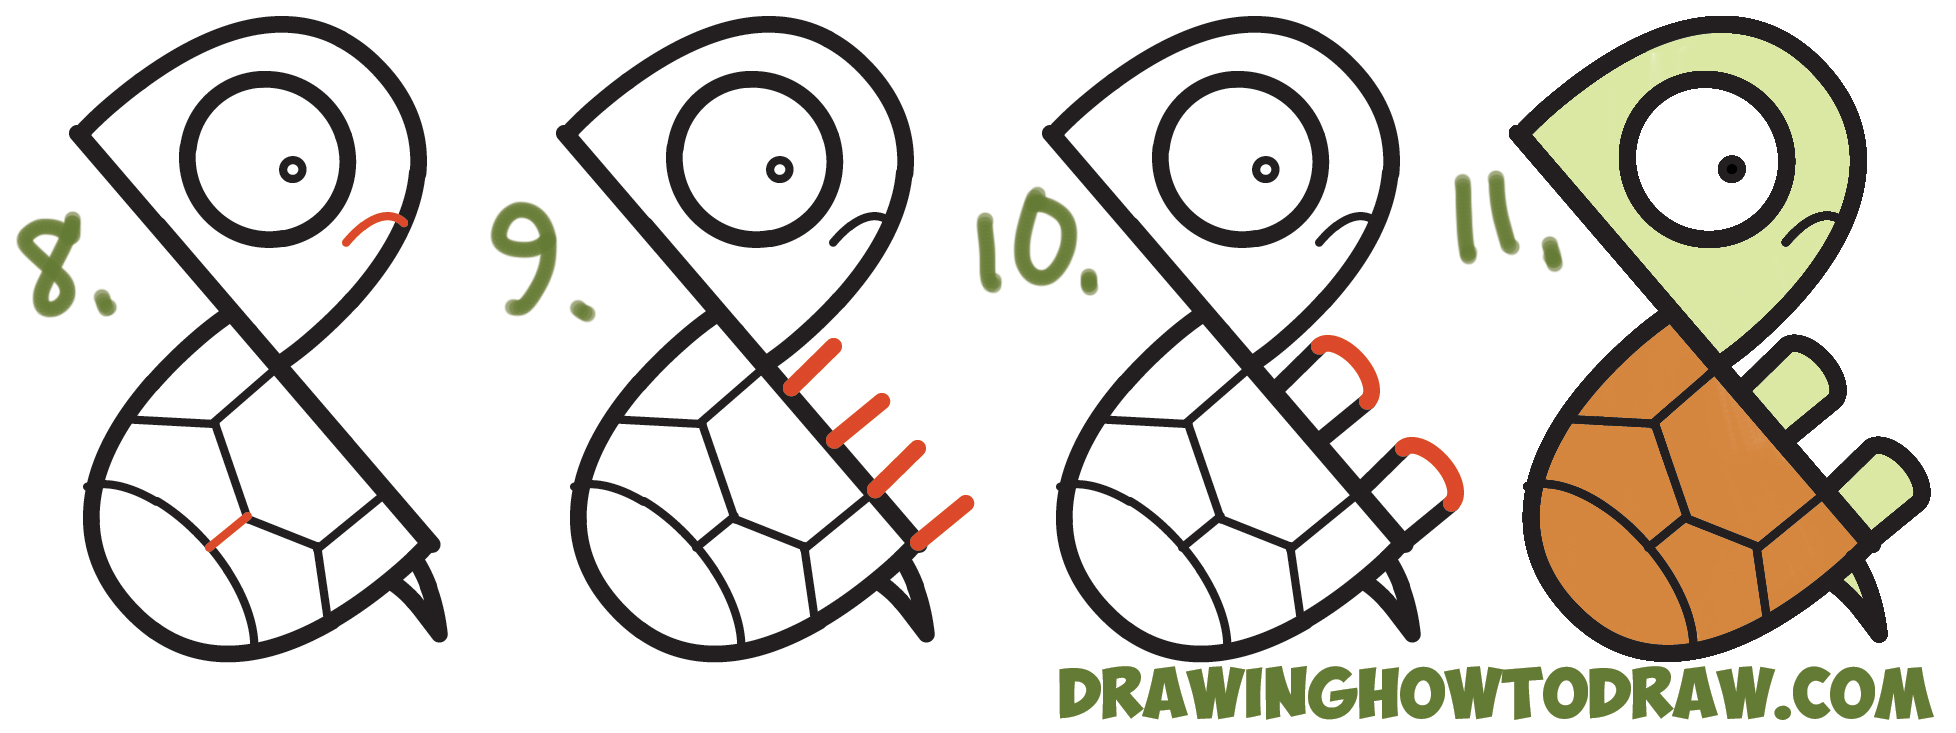 Uncategorized How To Draw A Turtle For Kids how to draw a cute cartoon turtle from letter p shapes easy step learn simple steps